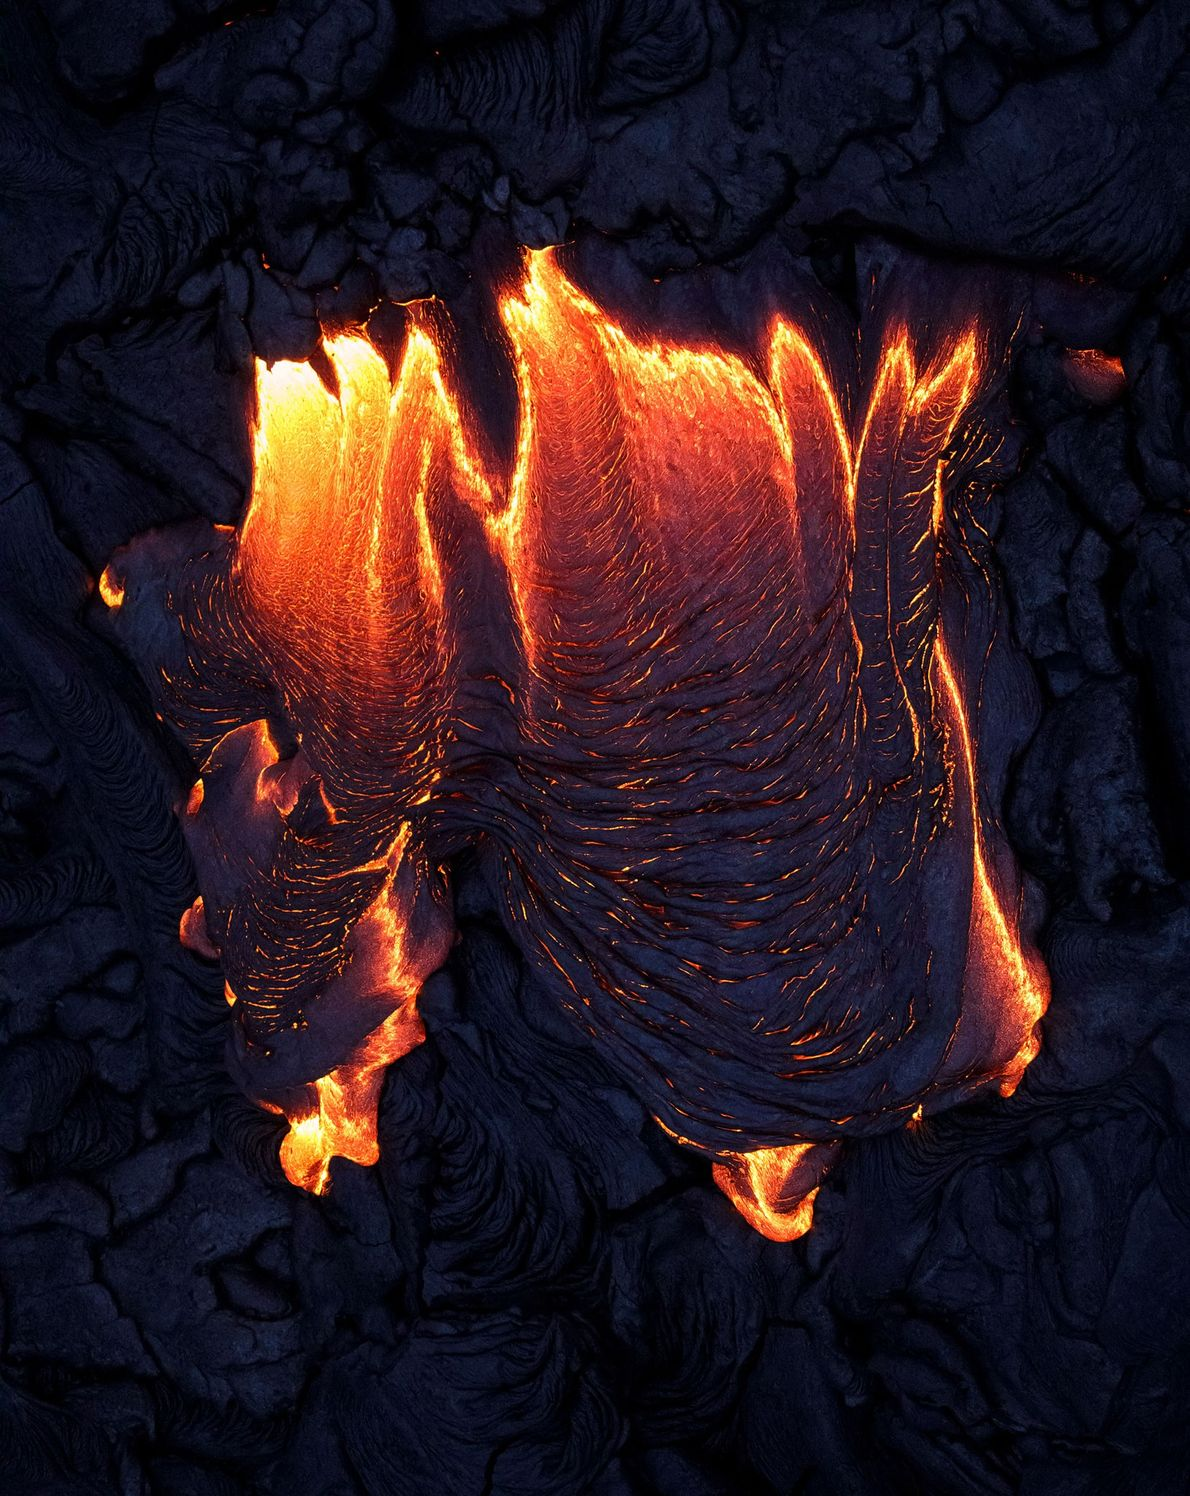 A helicopter shot of lava spurting from rock.